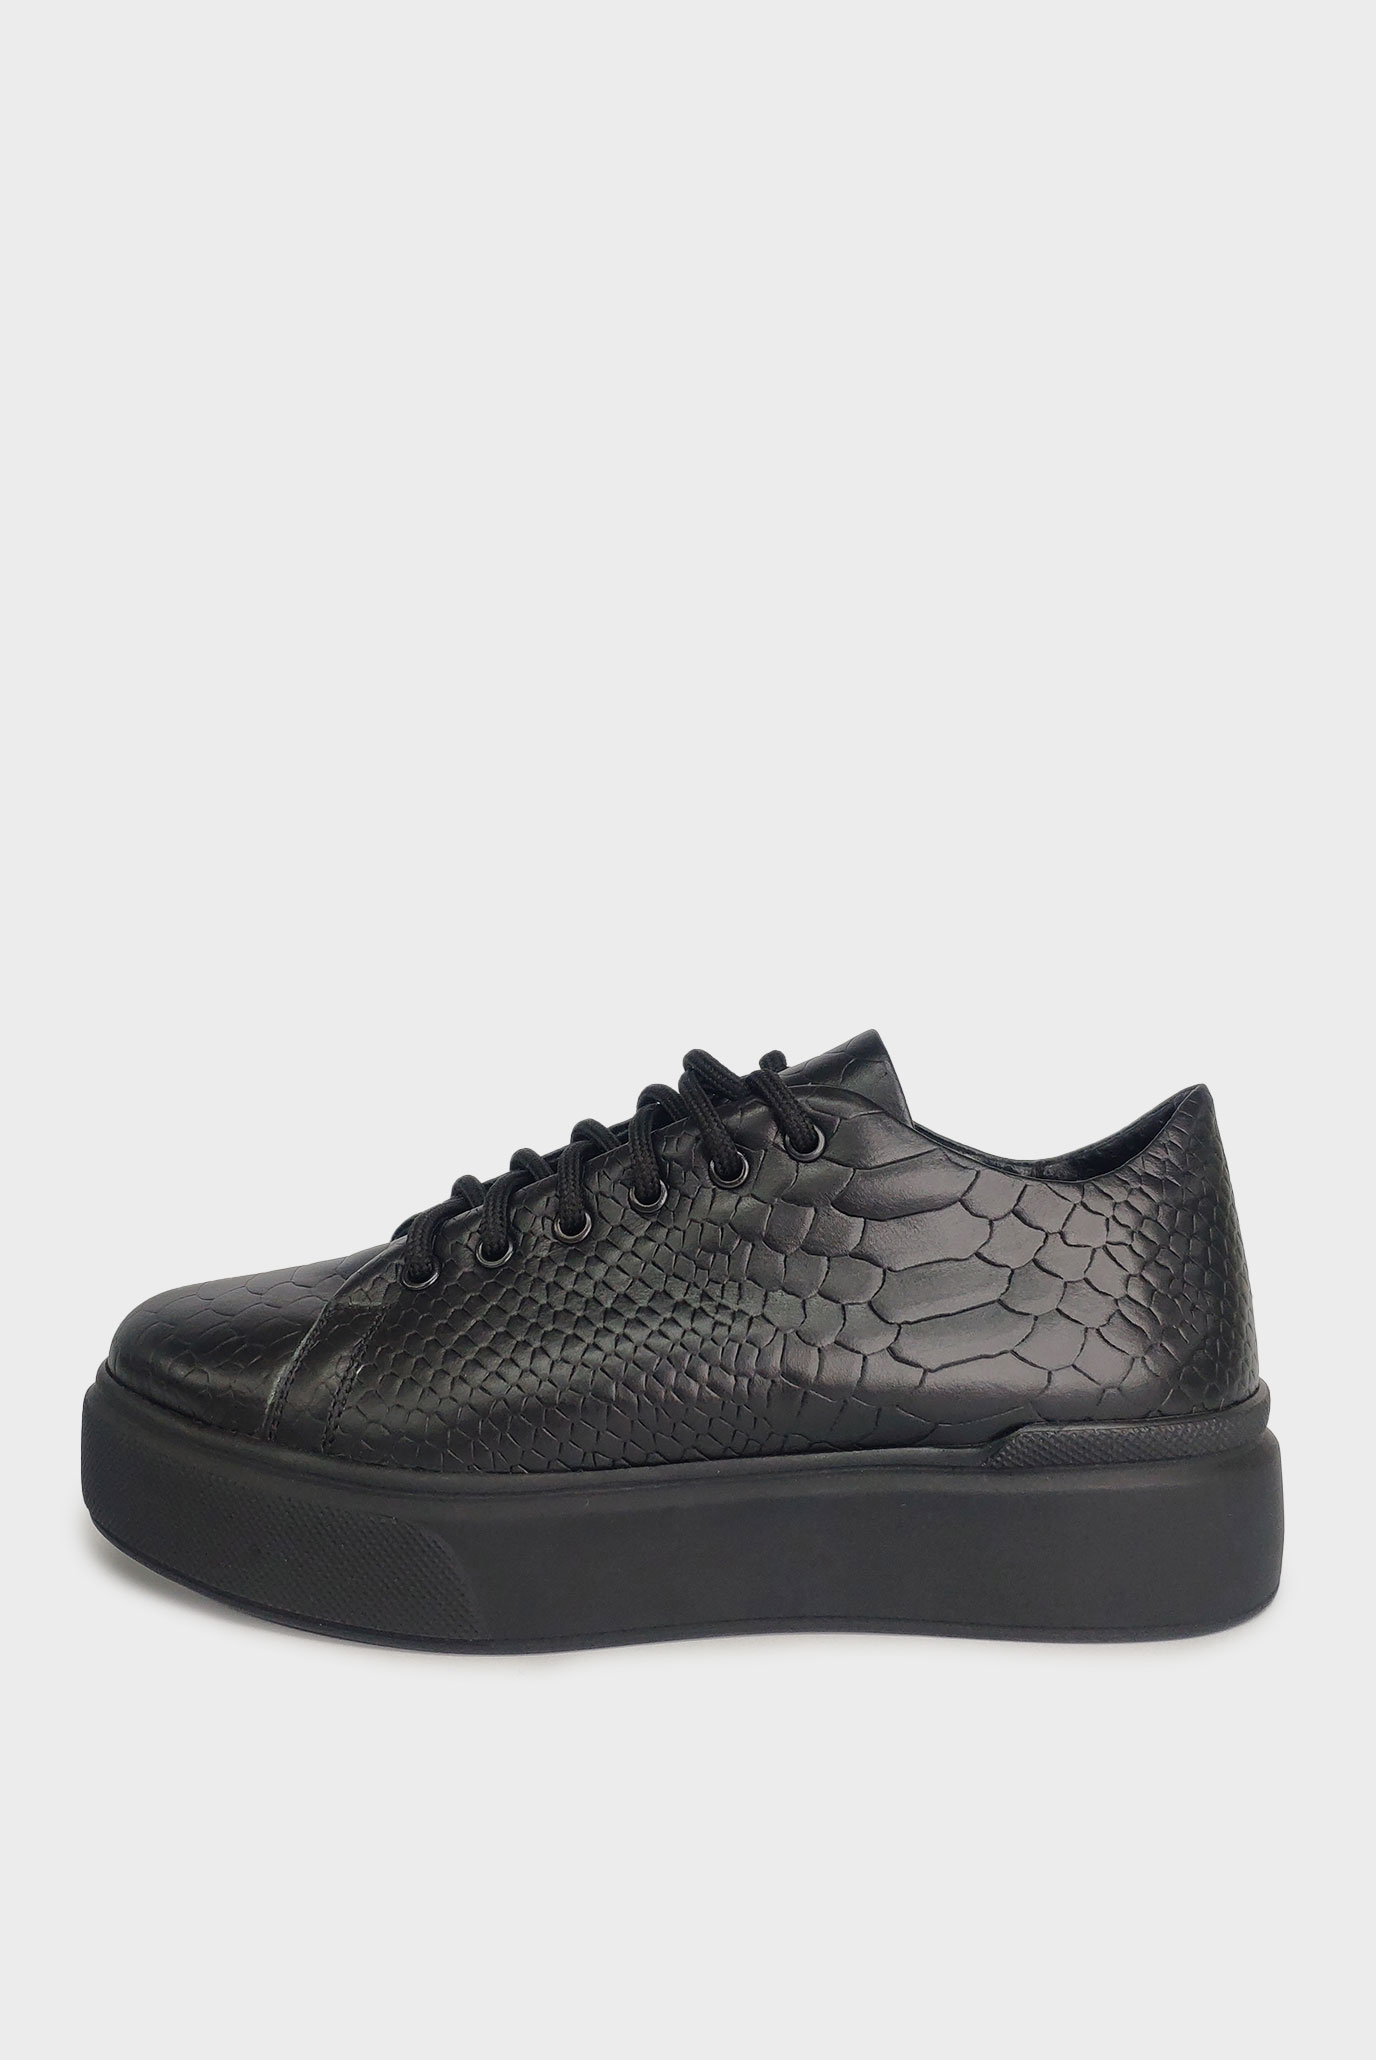 Кеды из кожи рептилии Air Step black